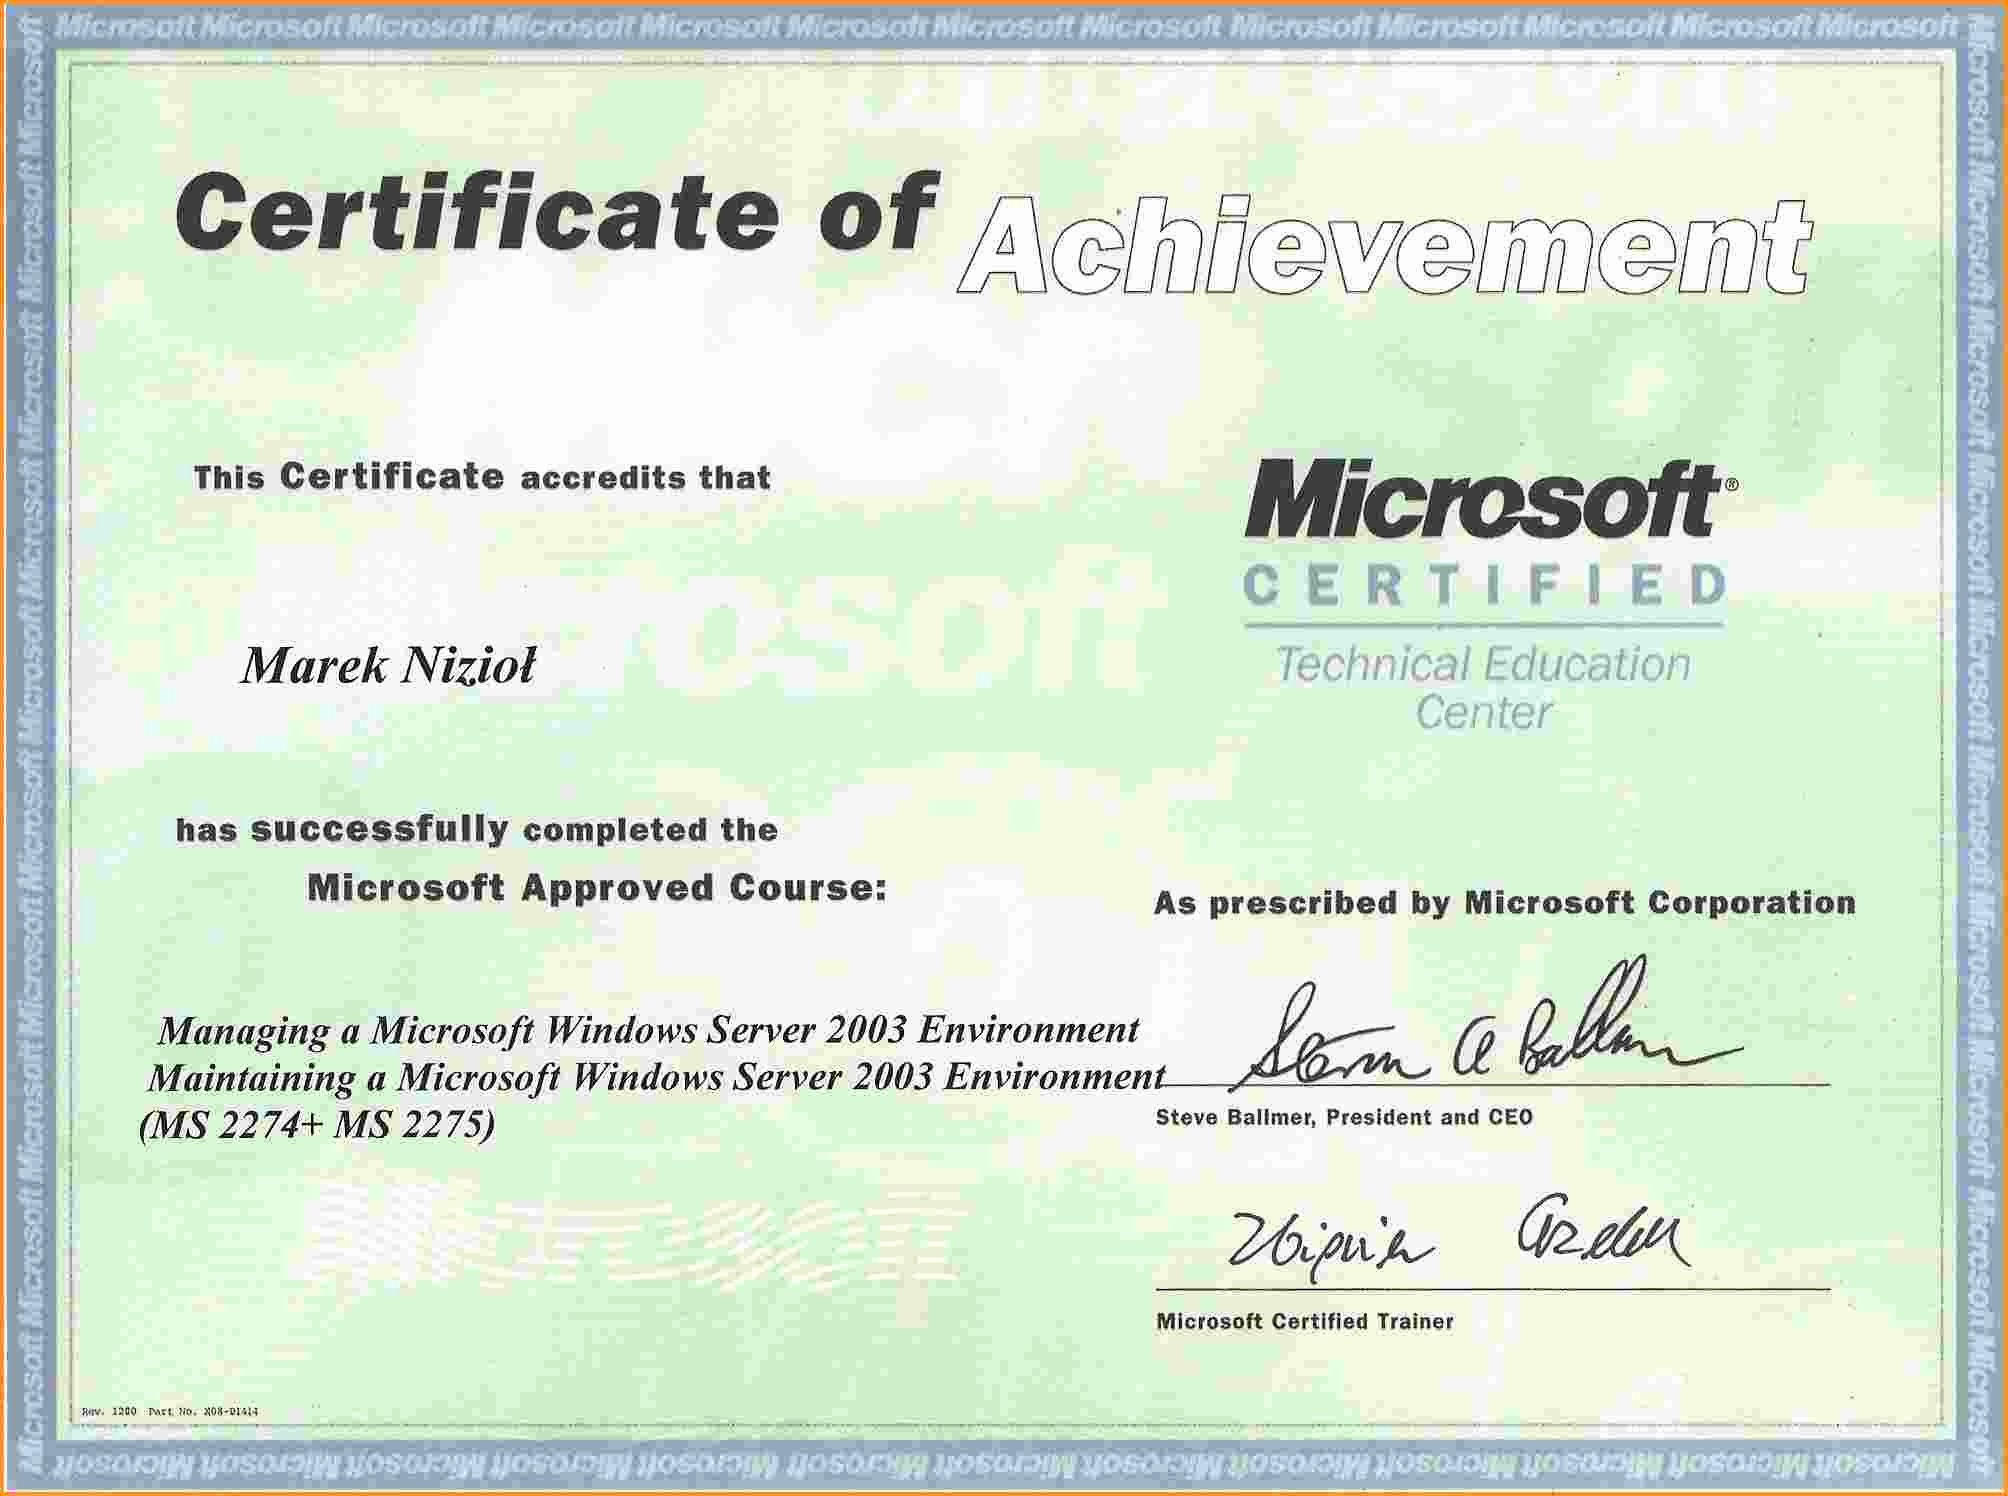 Certificate Templates for Microsoft Word Unique Microsoft Fice Certificate Templates